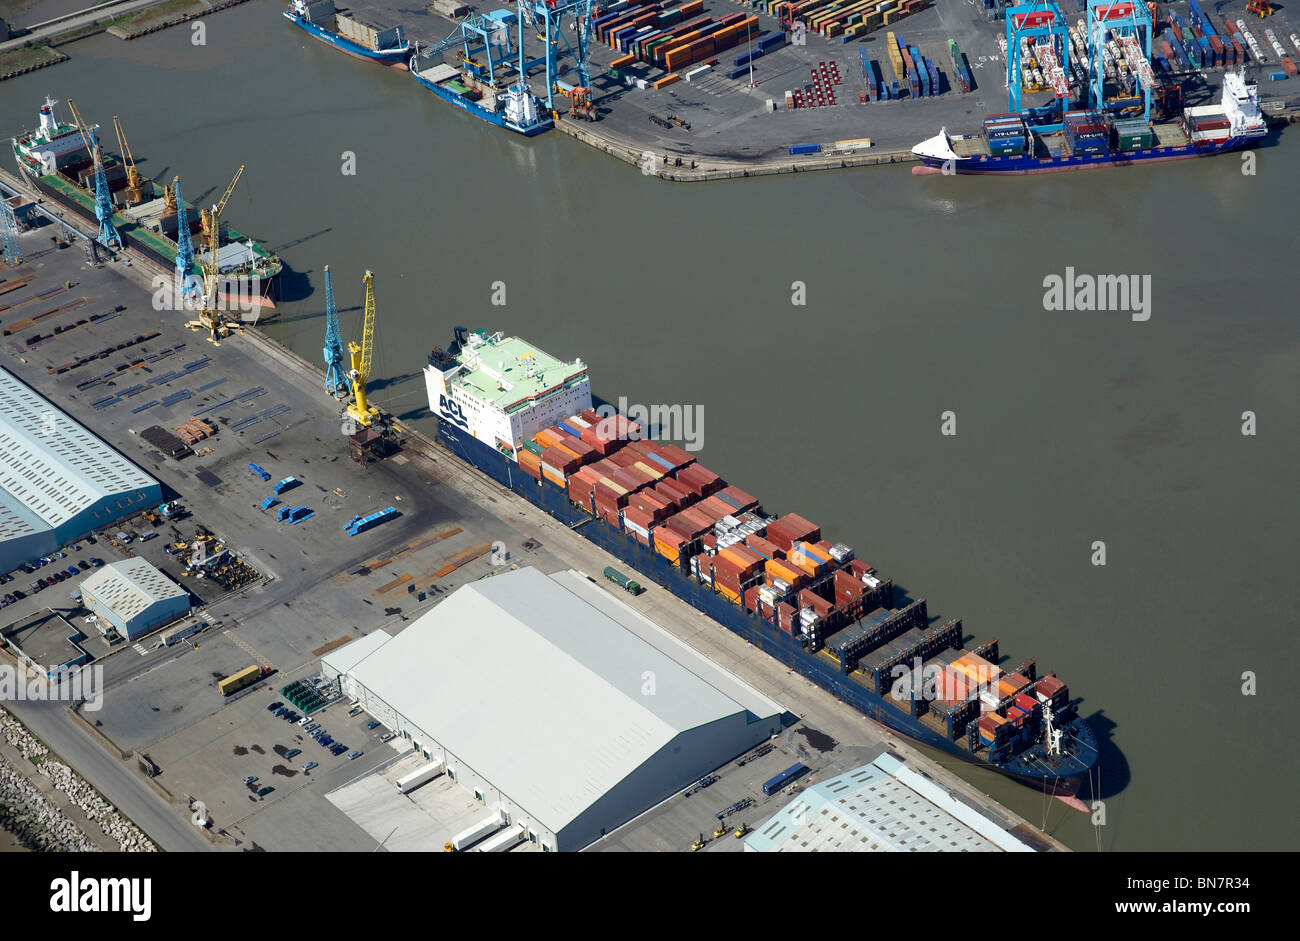 Liverpool Docks and the River Mersey from the air, North West England - Stock Image